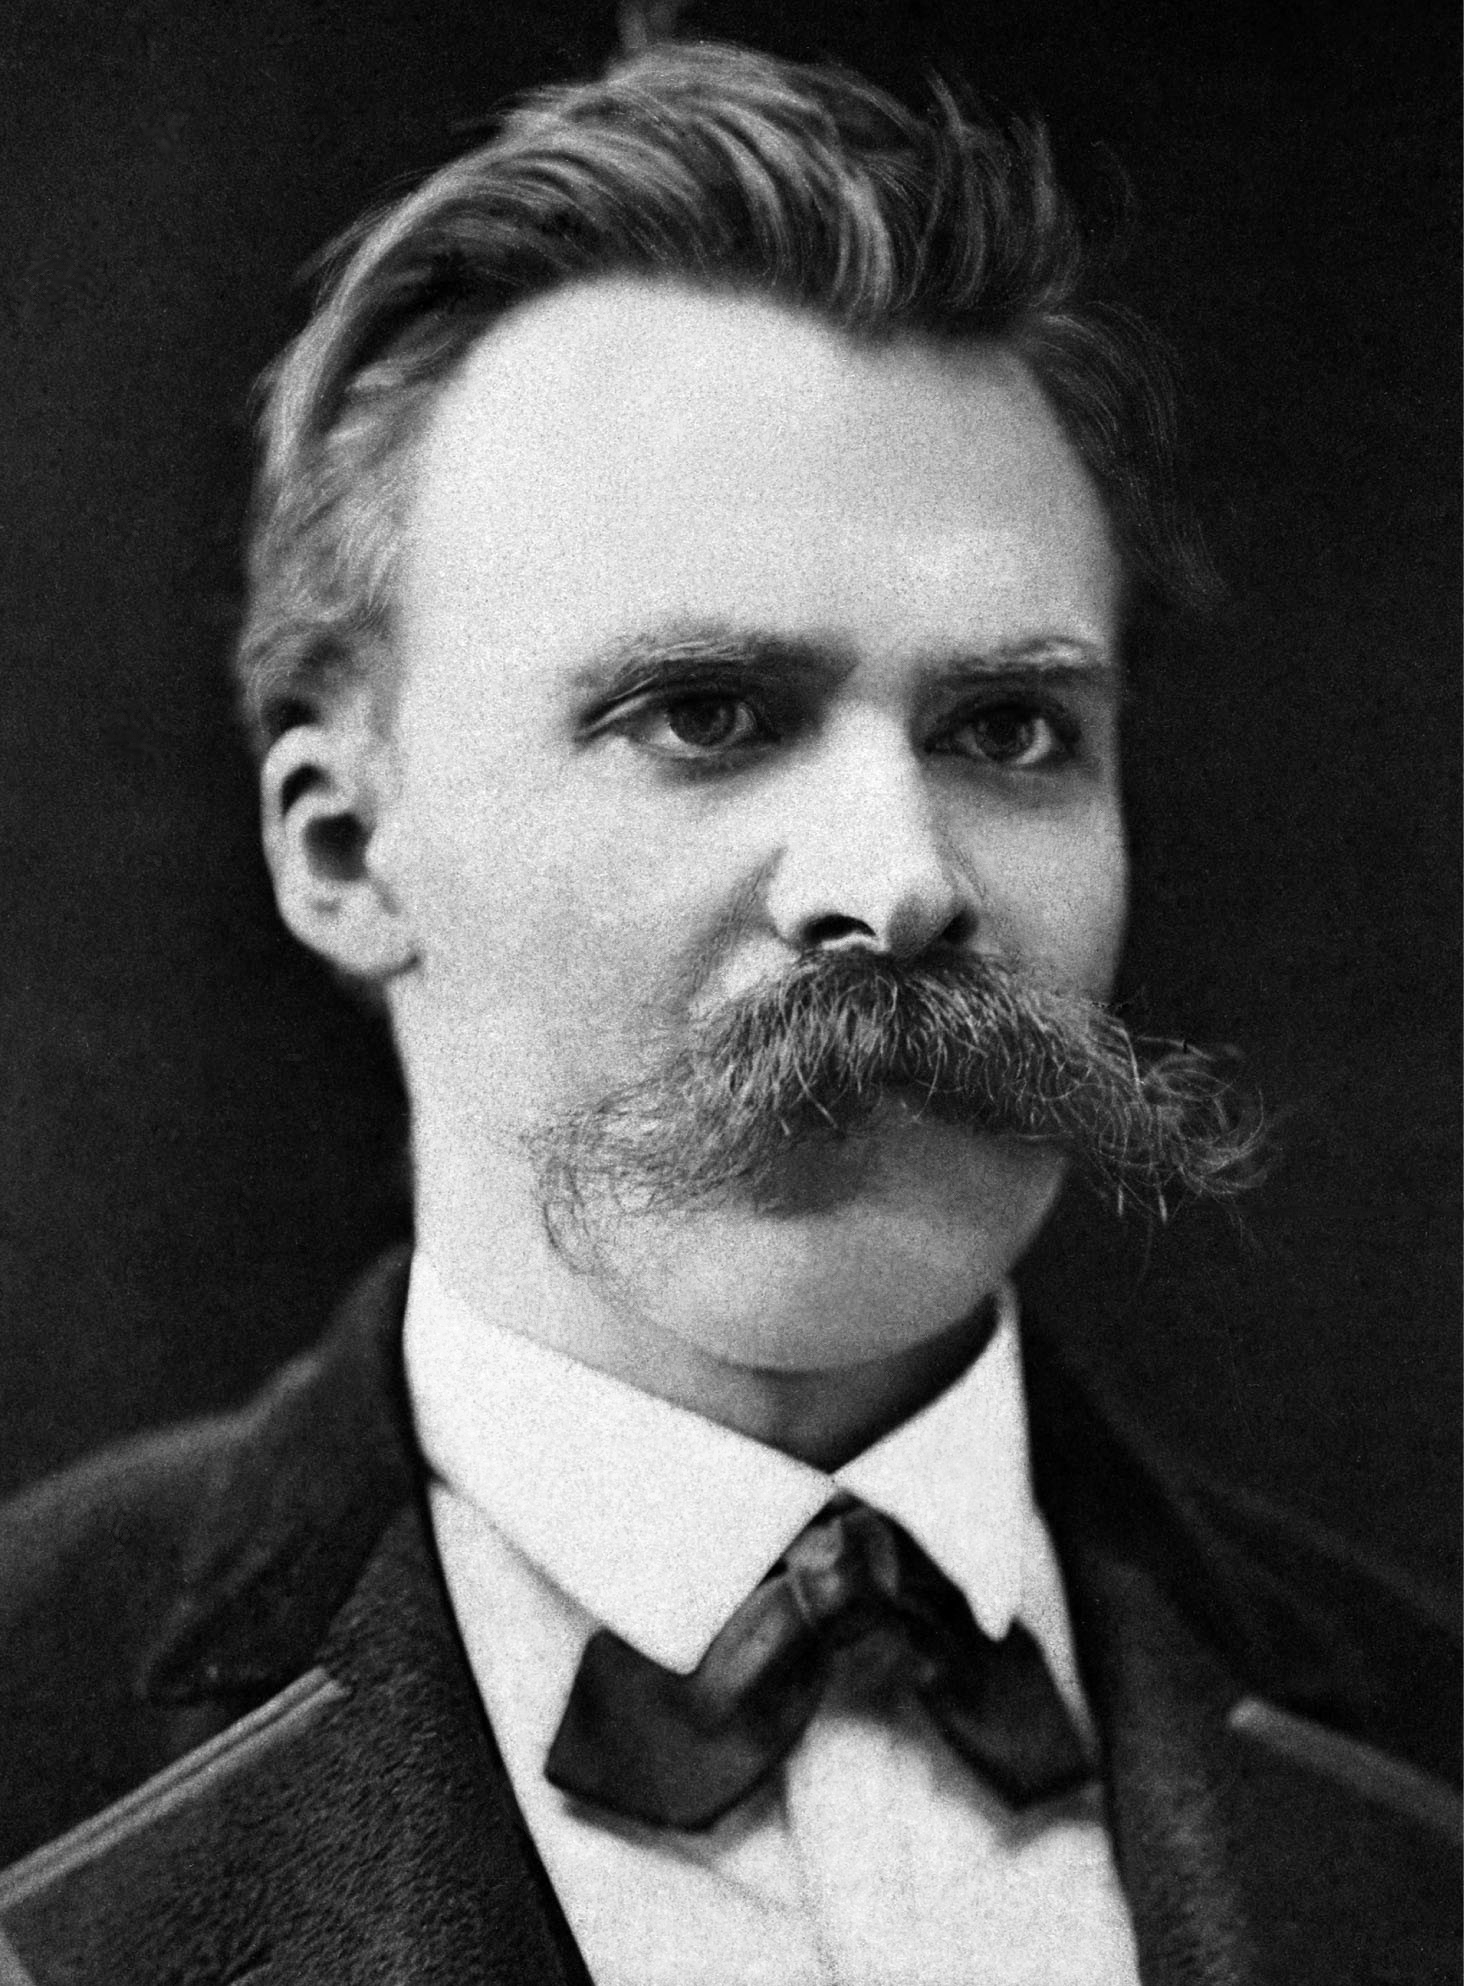 Nietzsche as professor at Basel (1875)